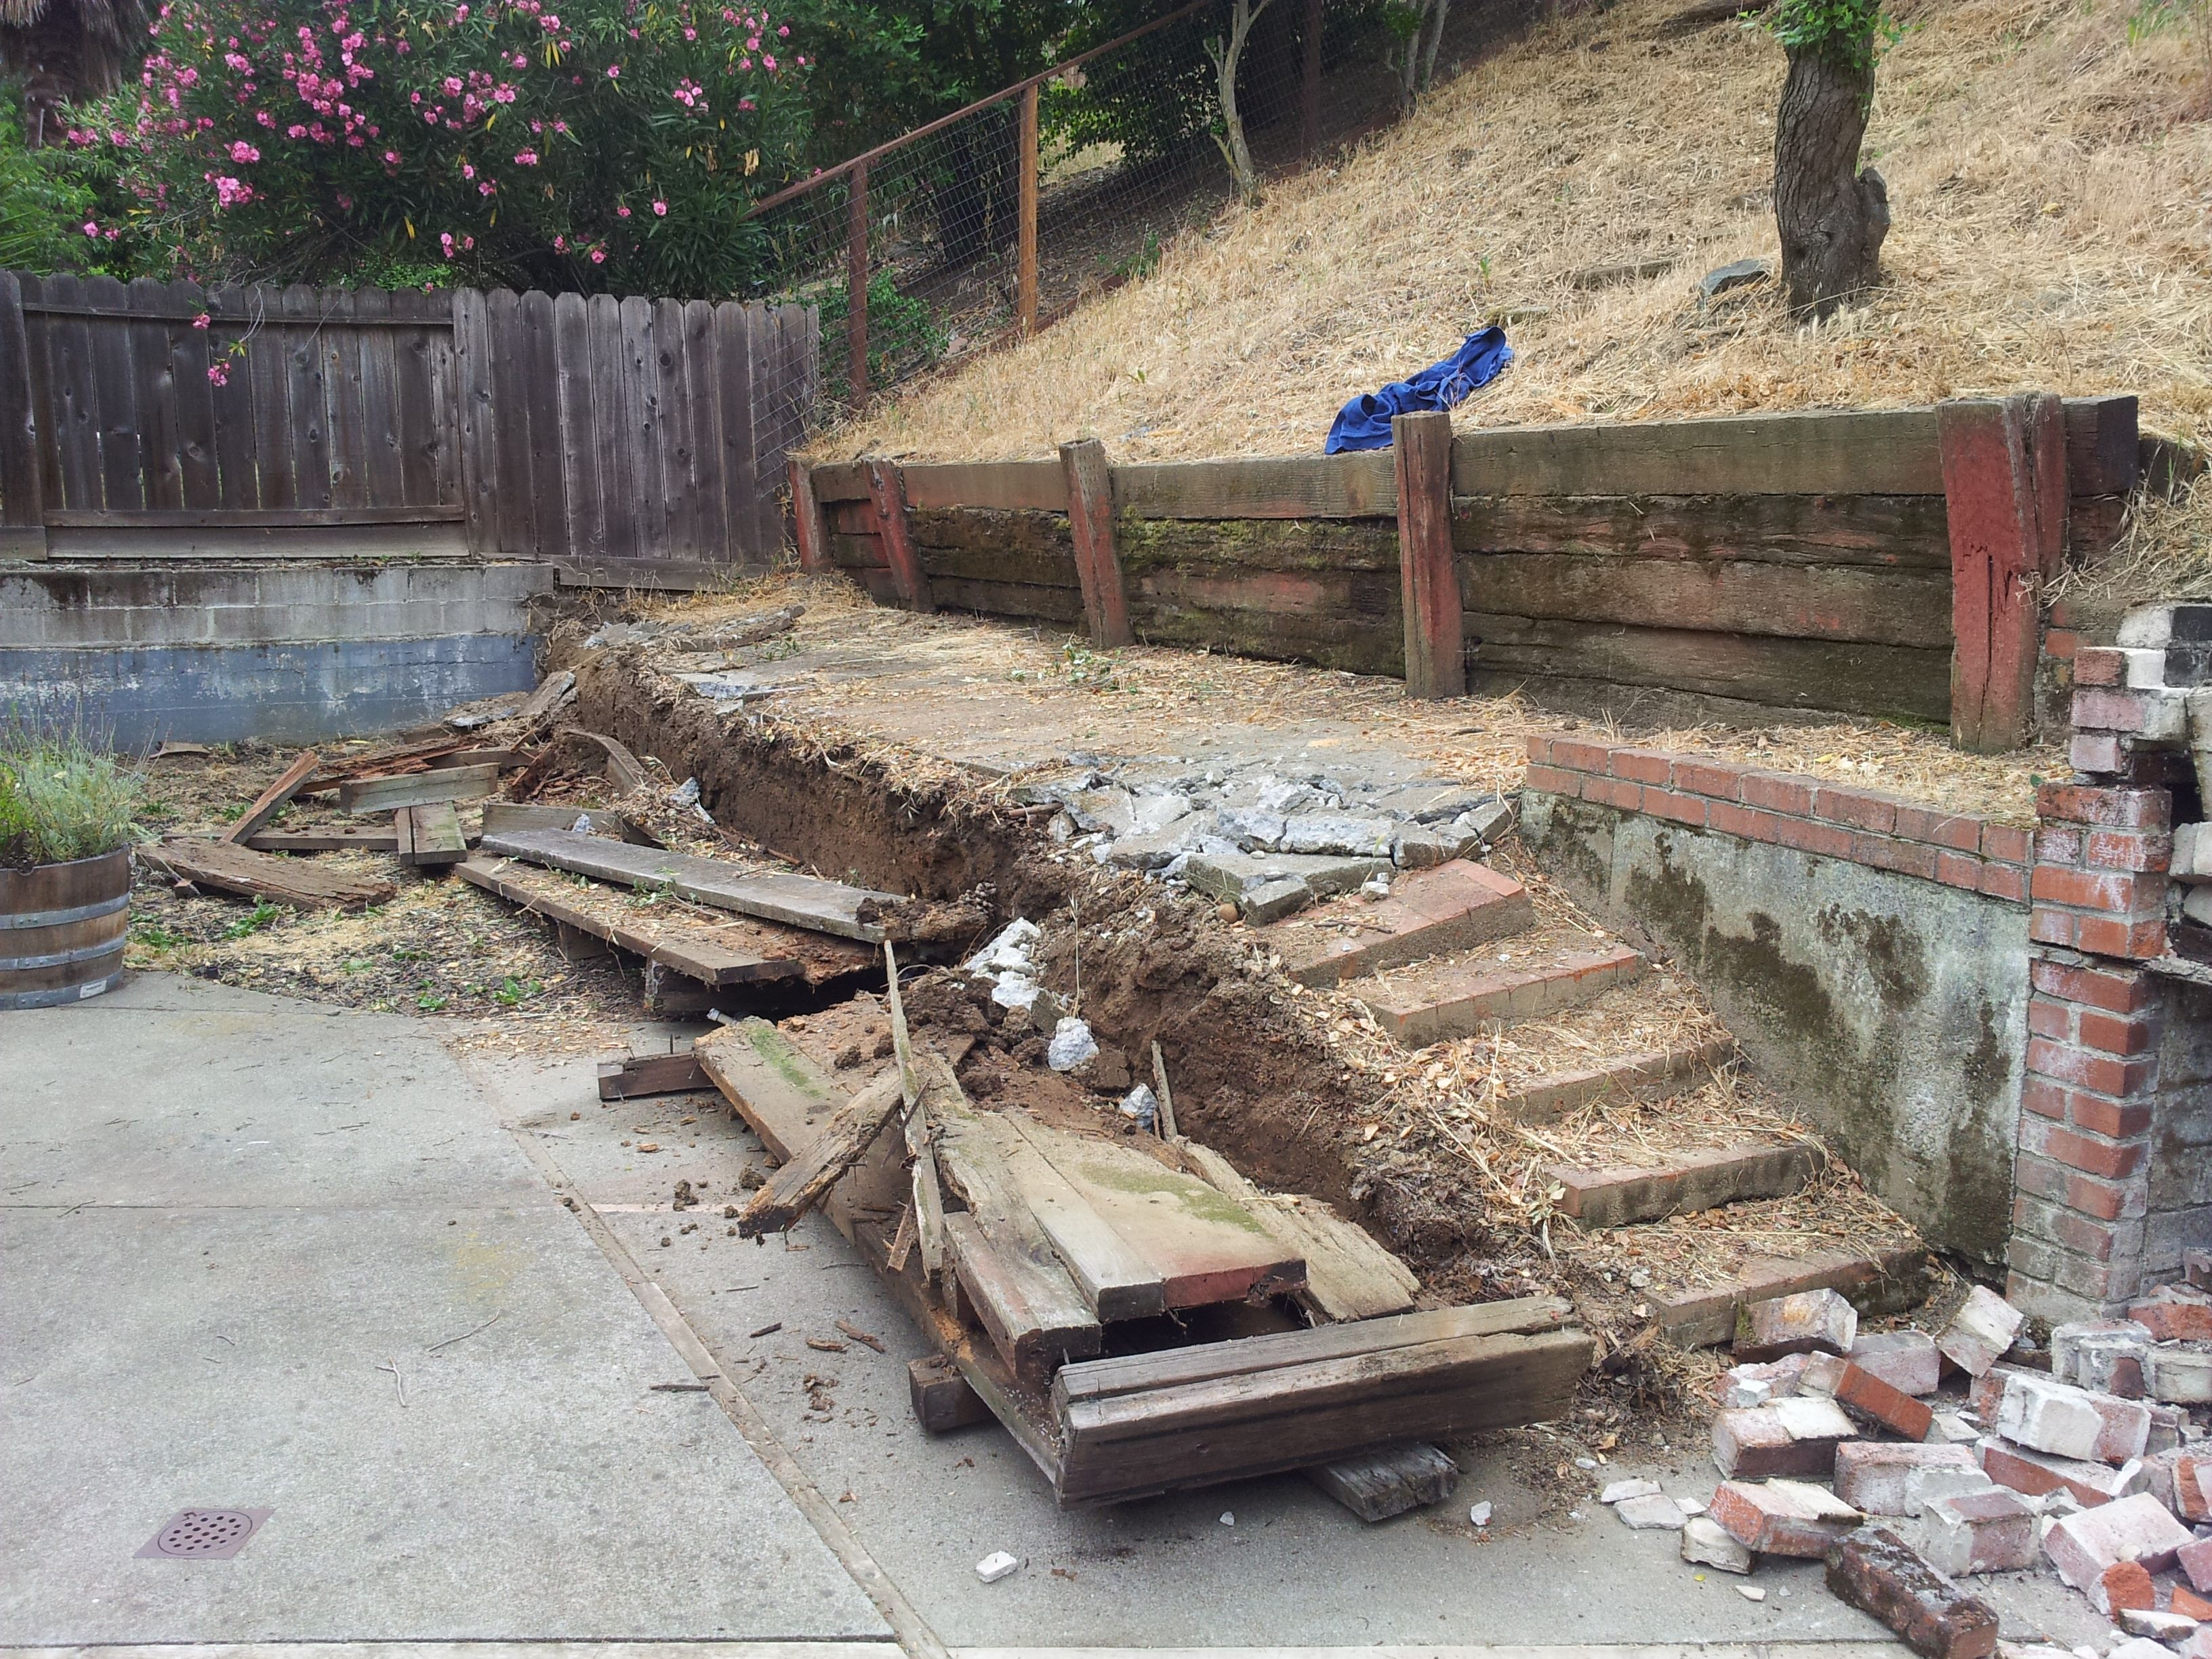 Removing Old Wood Retaining Wall Replacing With Mcnear Versa Lok Retaining Wall Www Allaccesslandscape Co Retaining Wall Real Estate Client Wood Retaining Wall